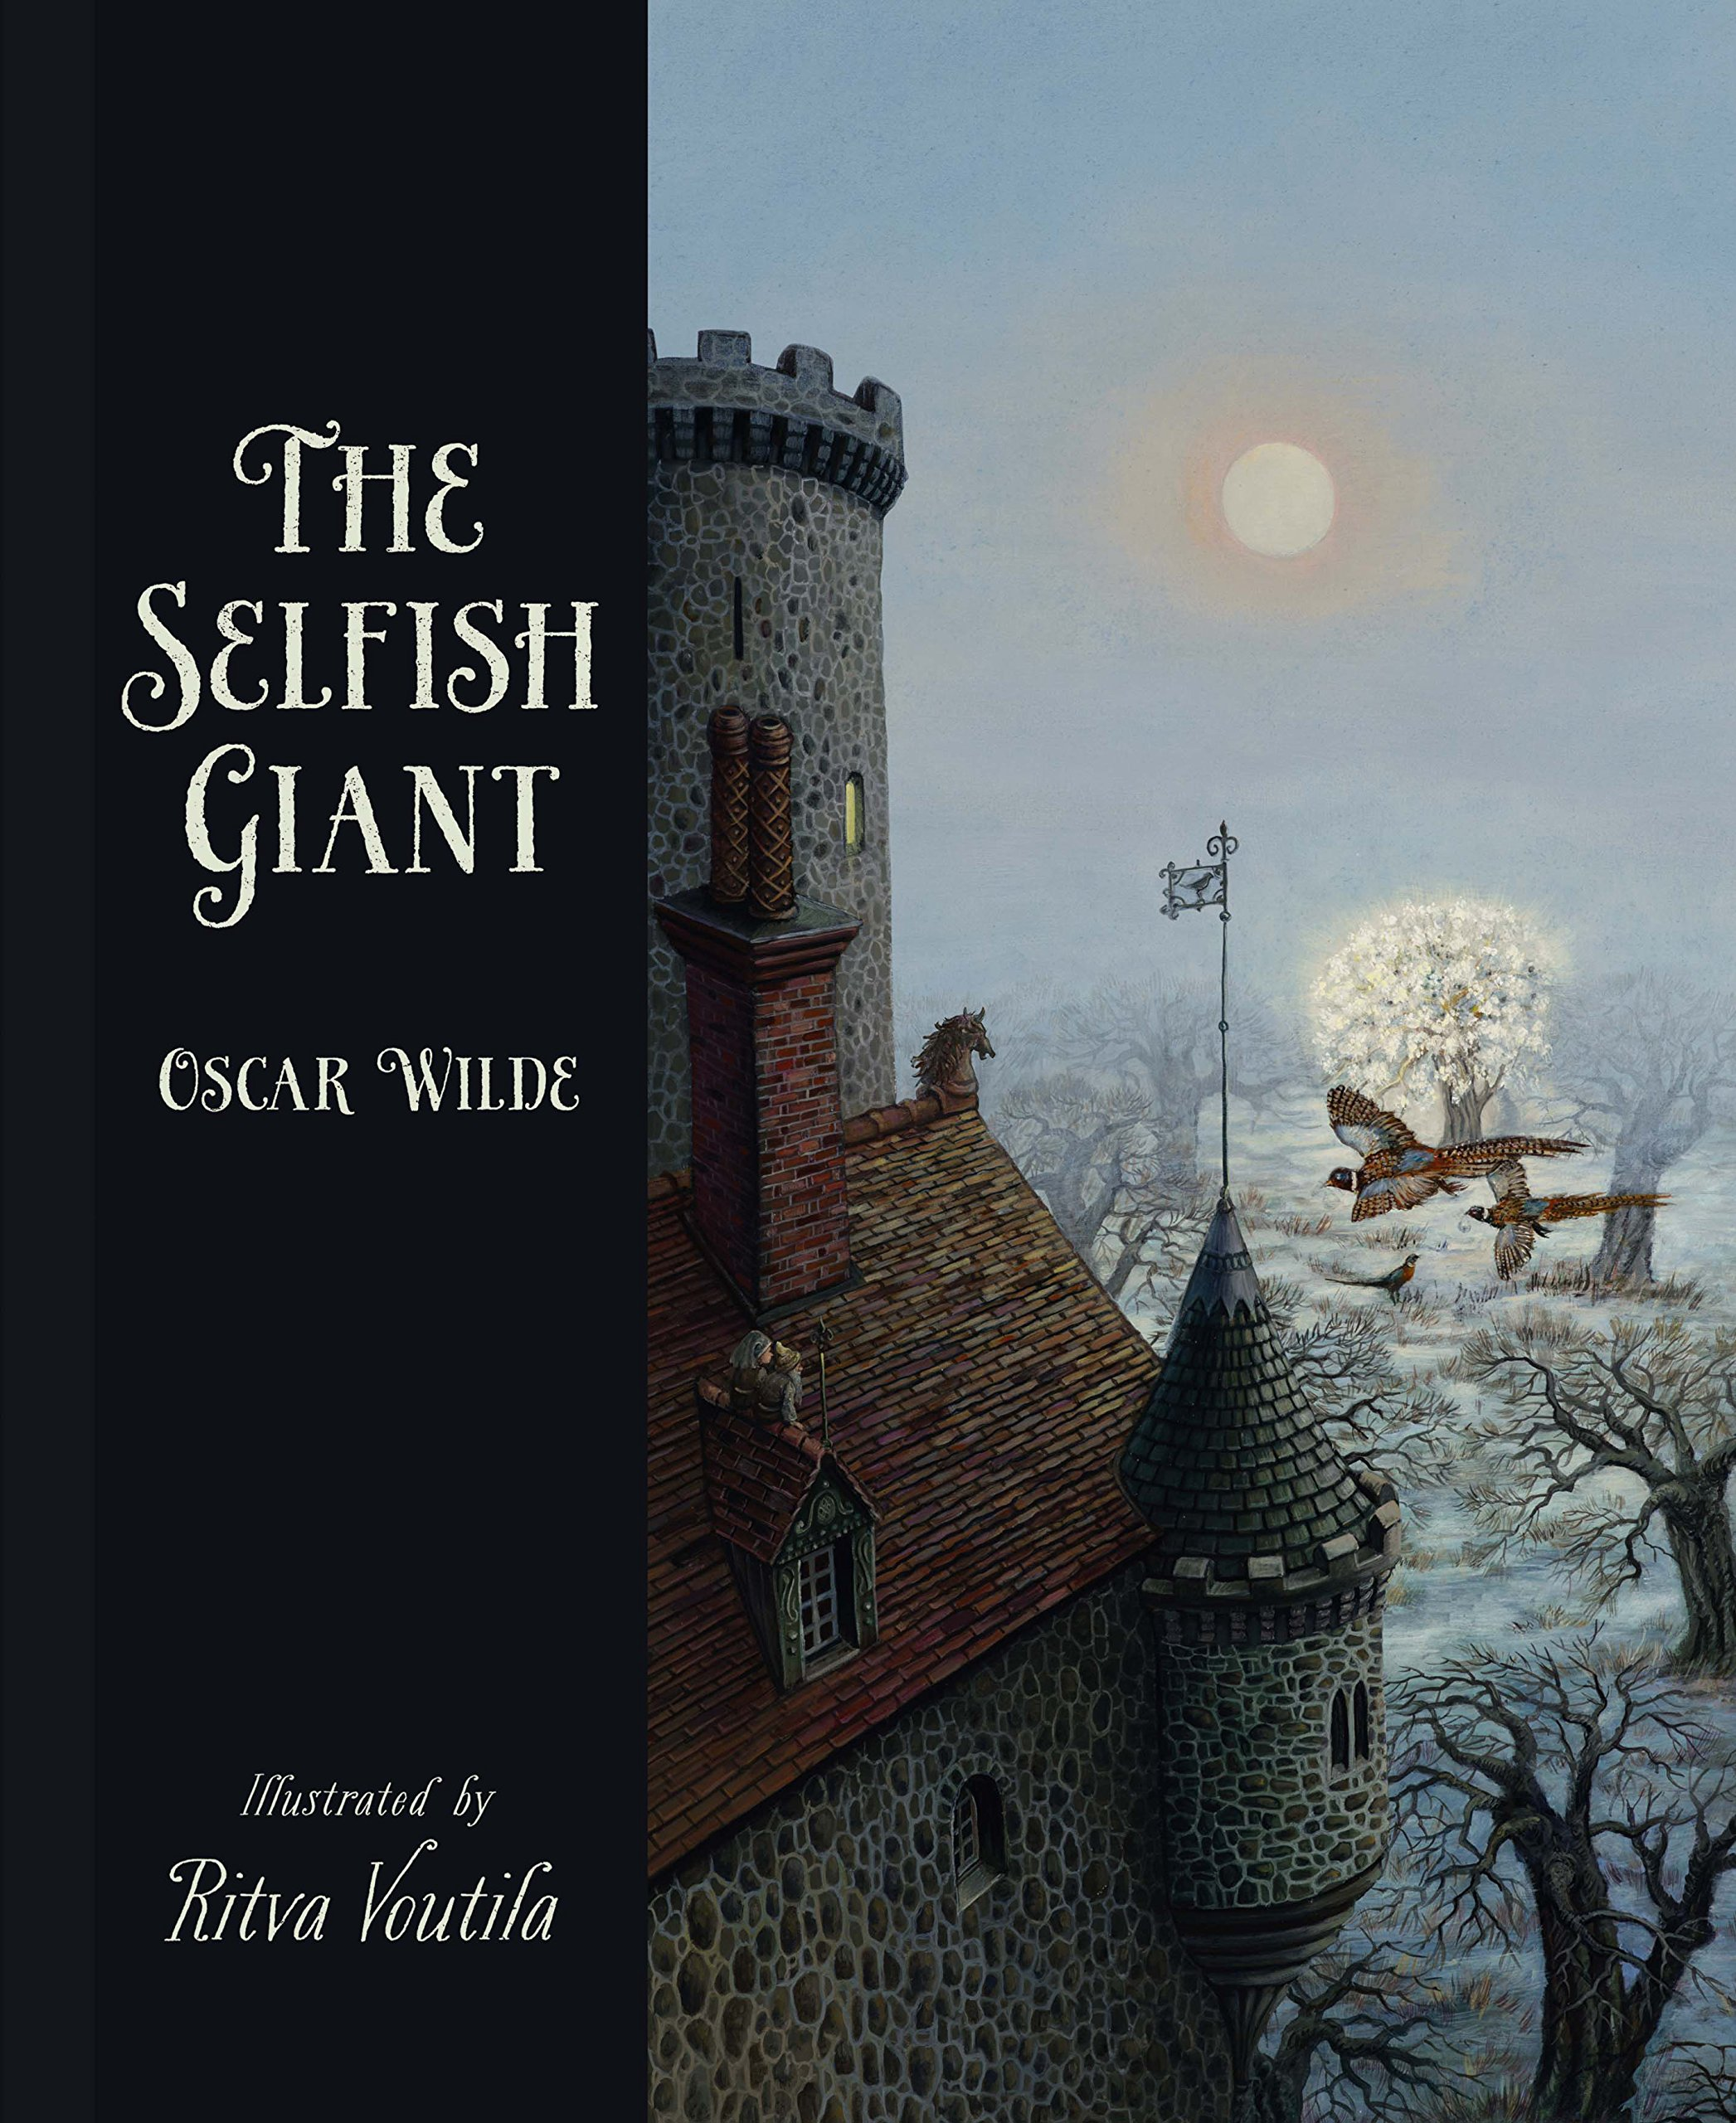 The selfish giant by oscar wilde oscar wilde ritva voutila the selfish giant by oscar wilde oscar wilde ritva voutila 9781742376509 amazon books nvjuhfo Images